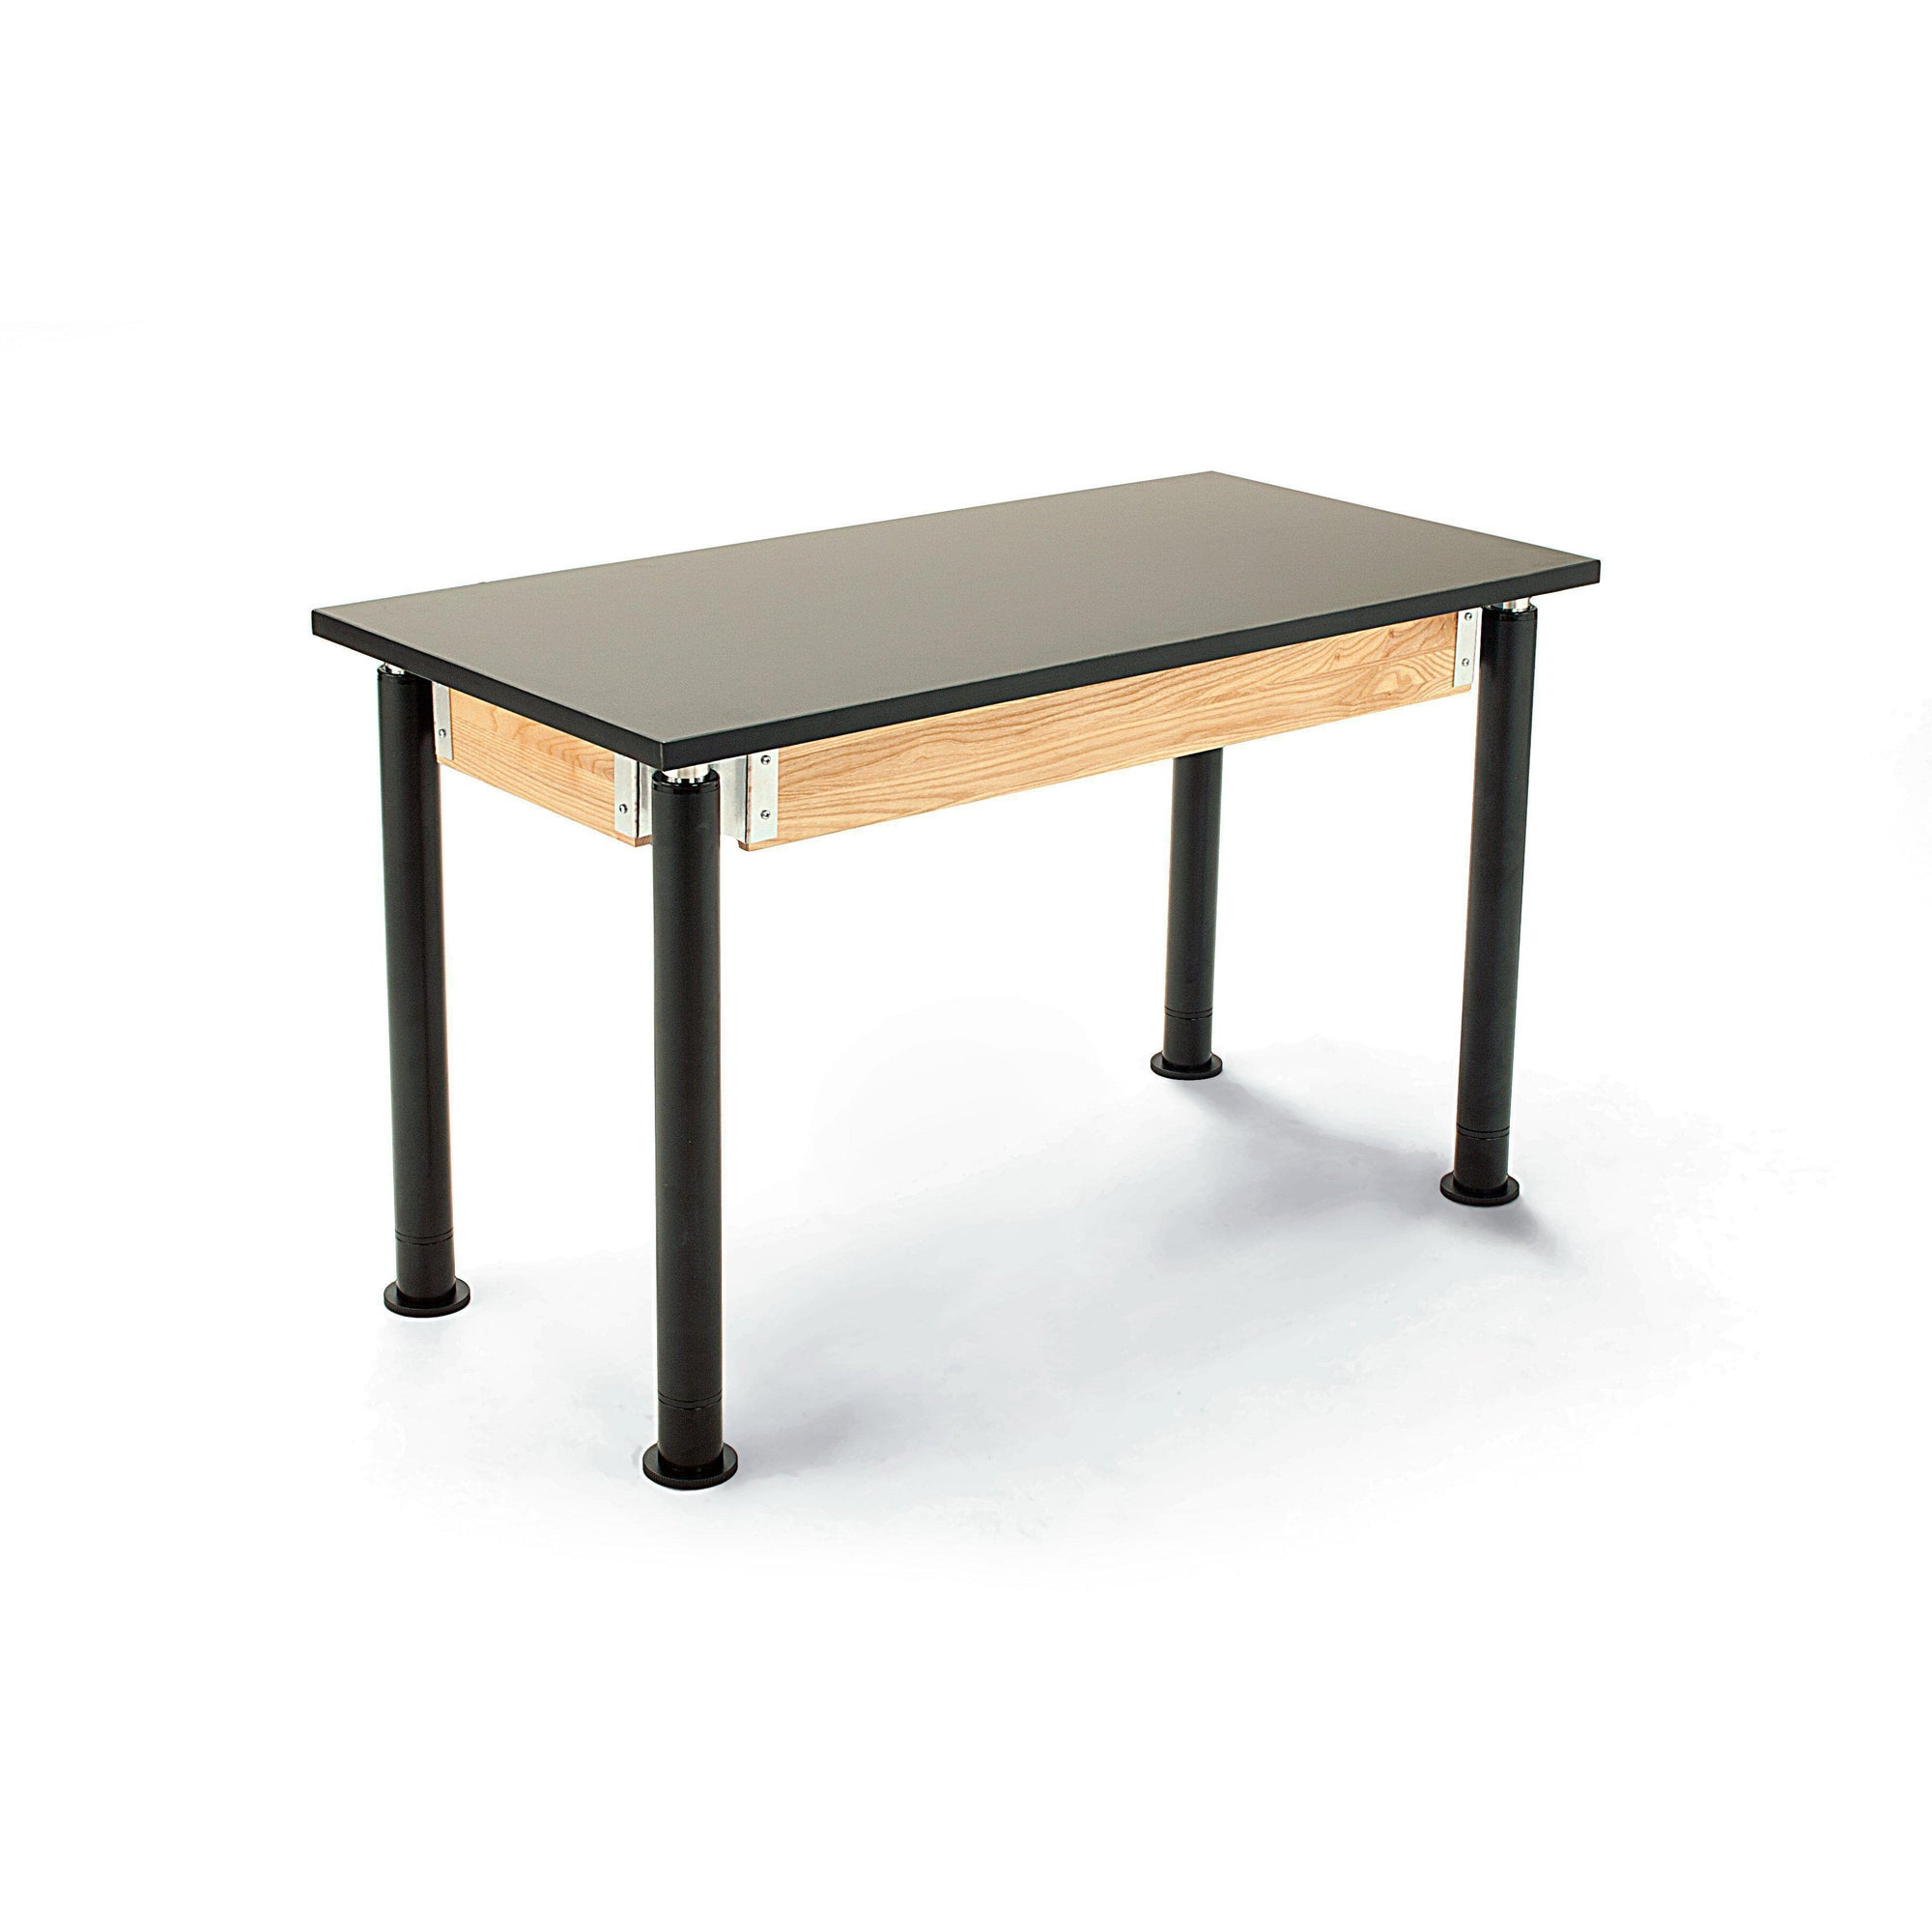 Superior Science Lab Tables with Phenolic Top, Contemporary Styled Height Adjustable Legs